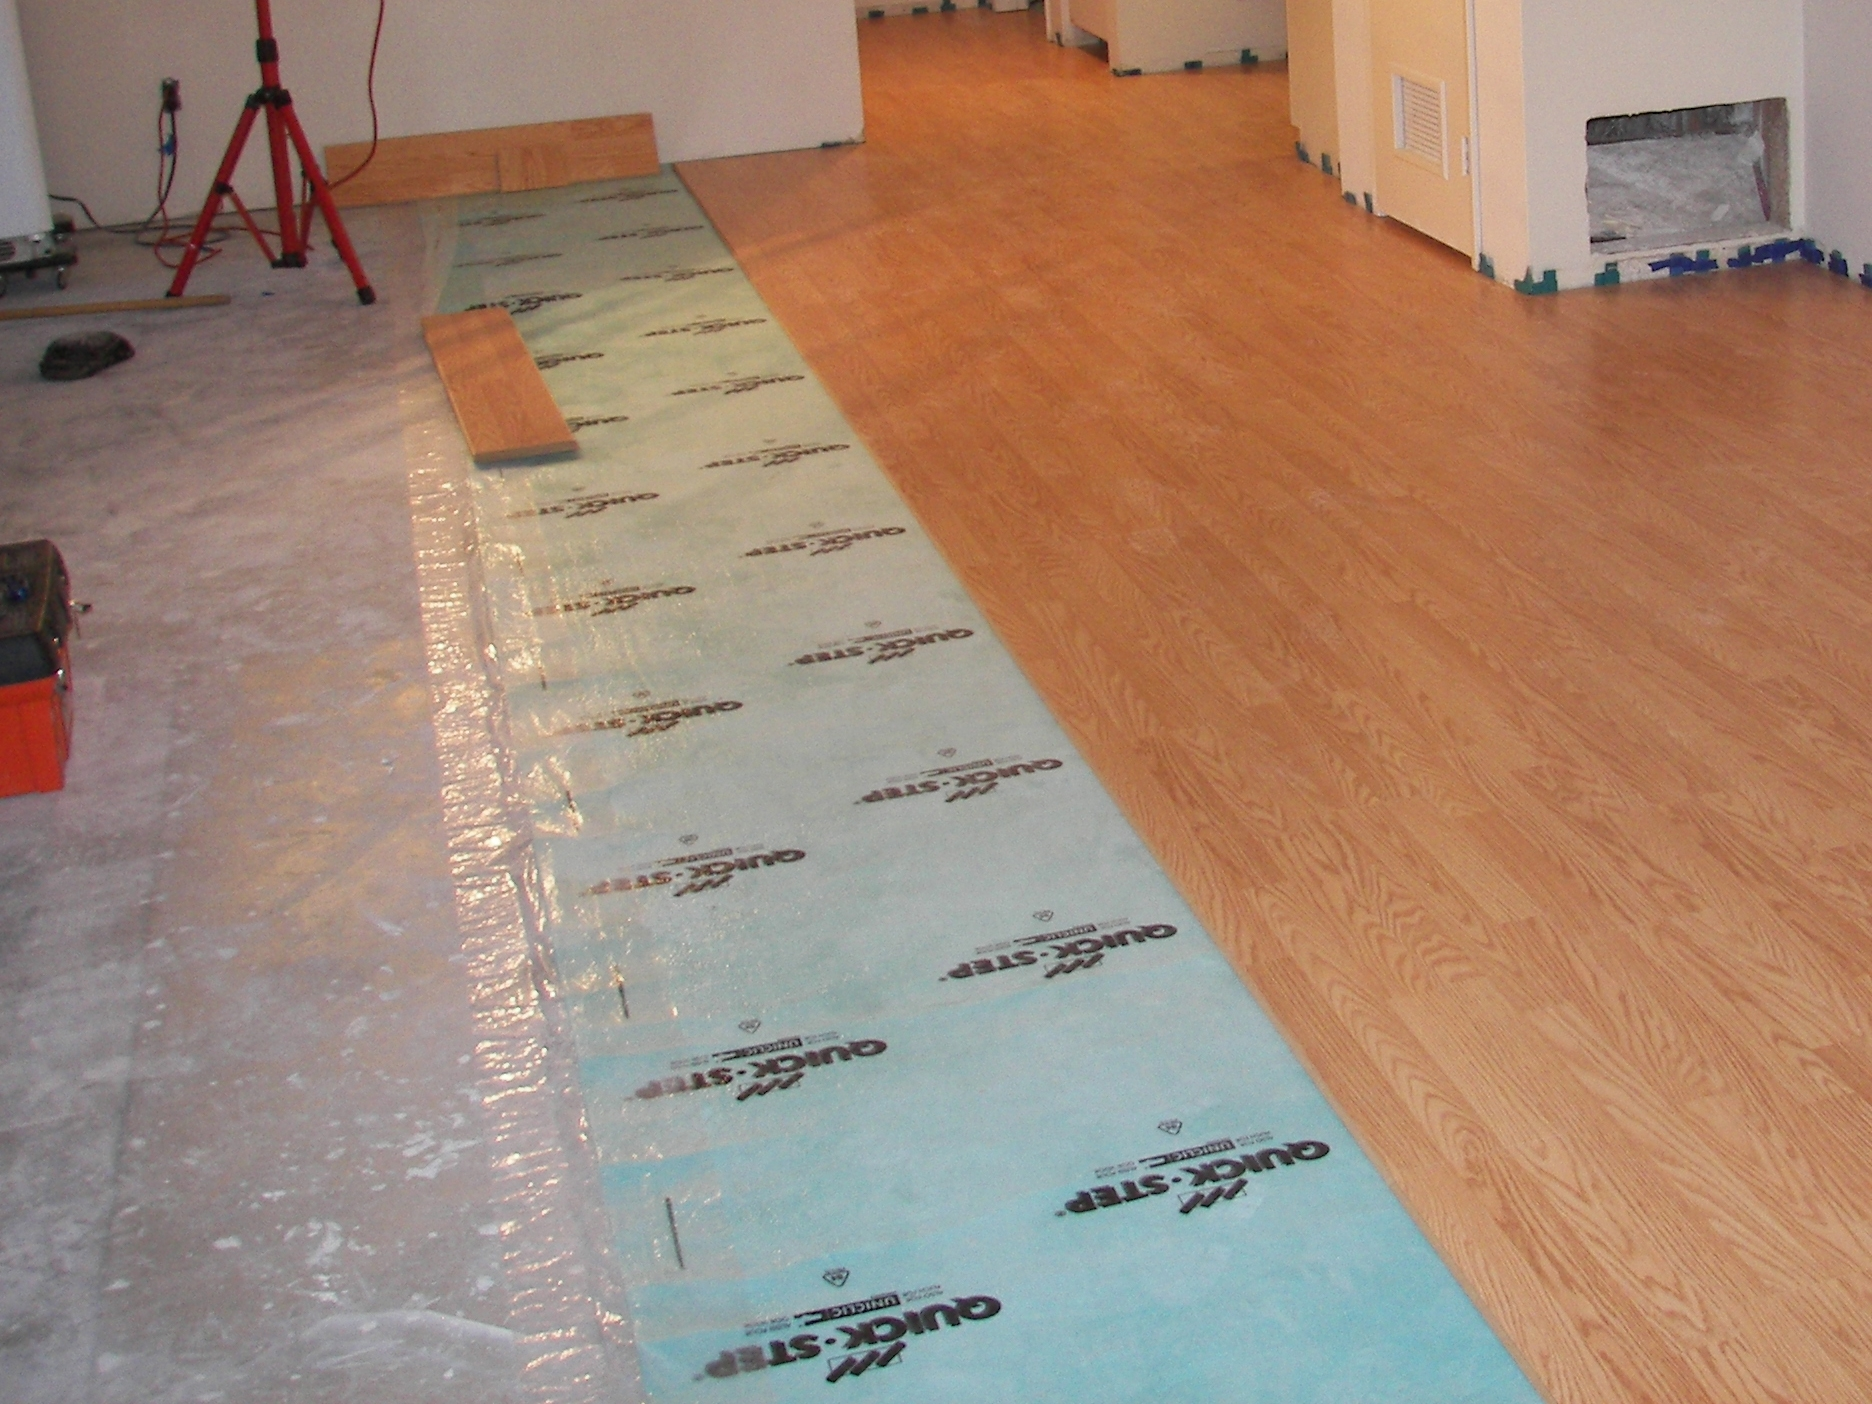 Wood Floors Over Concrete Subfloor